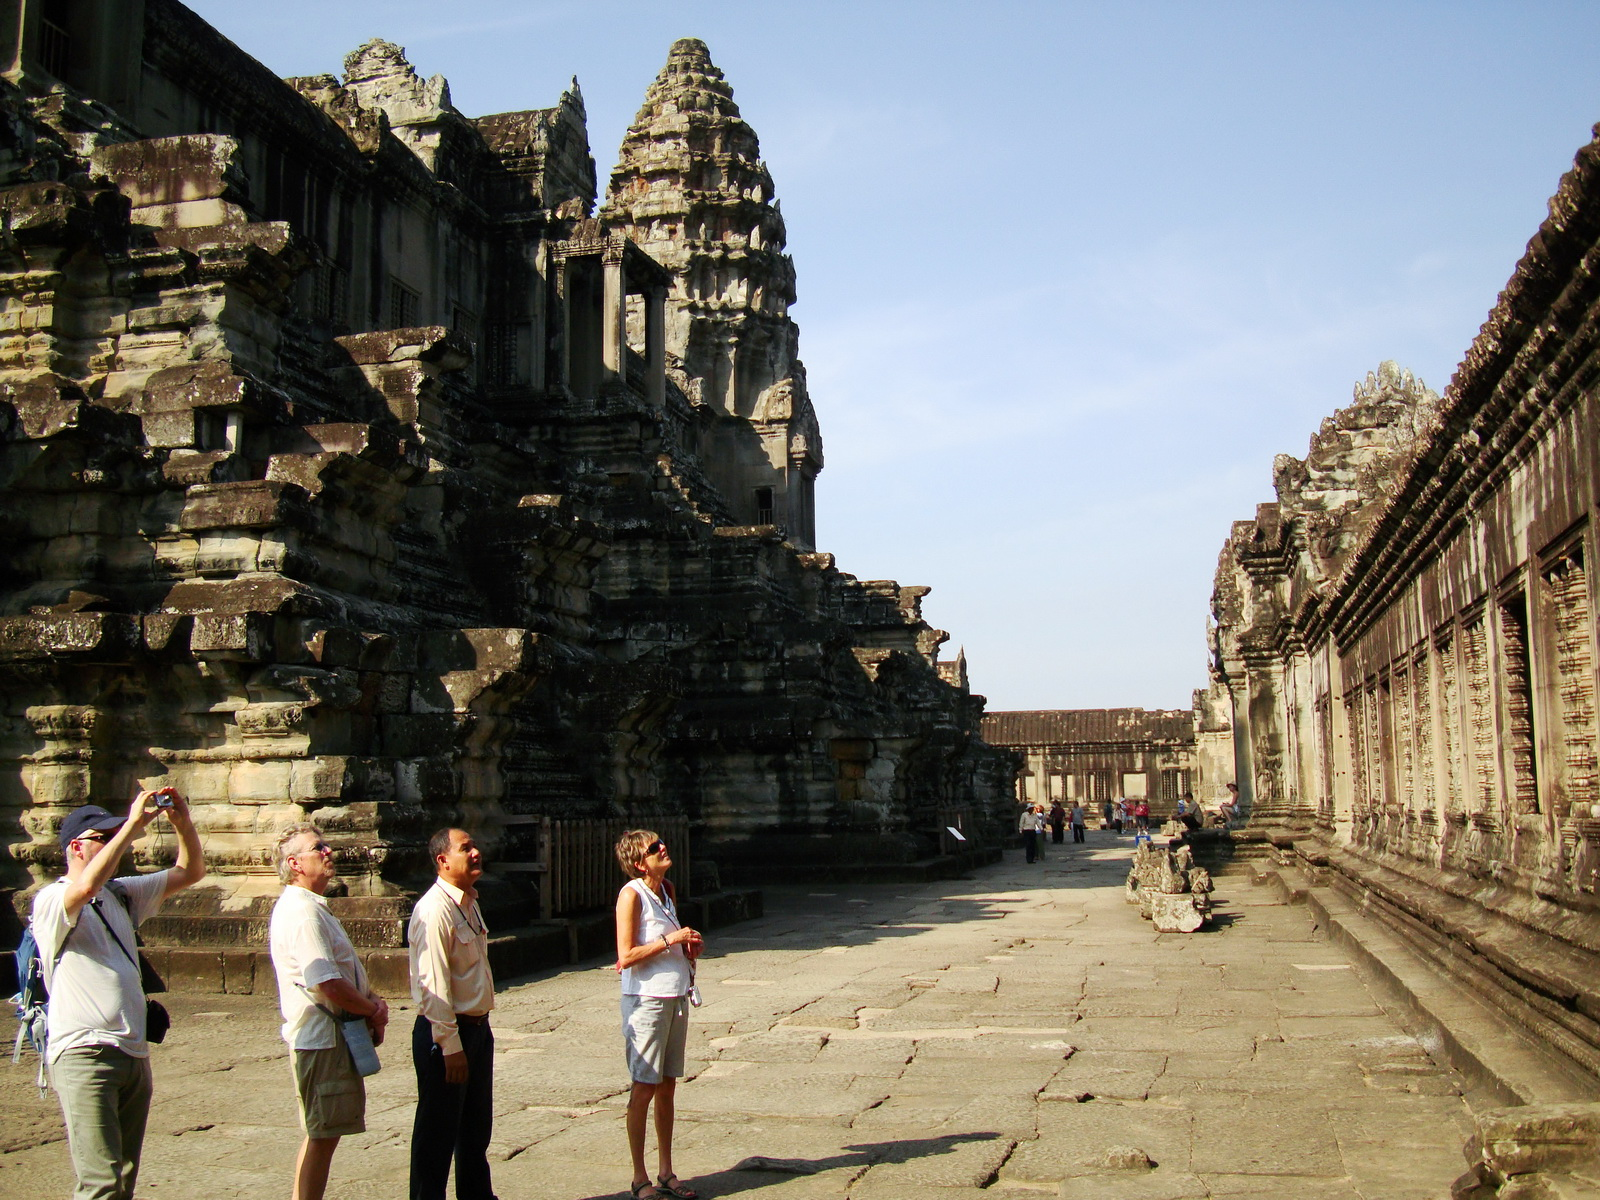 Angkor Wat Khmer architecture inner sanctuary towers 10